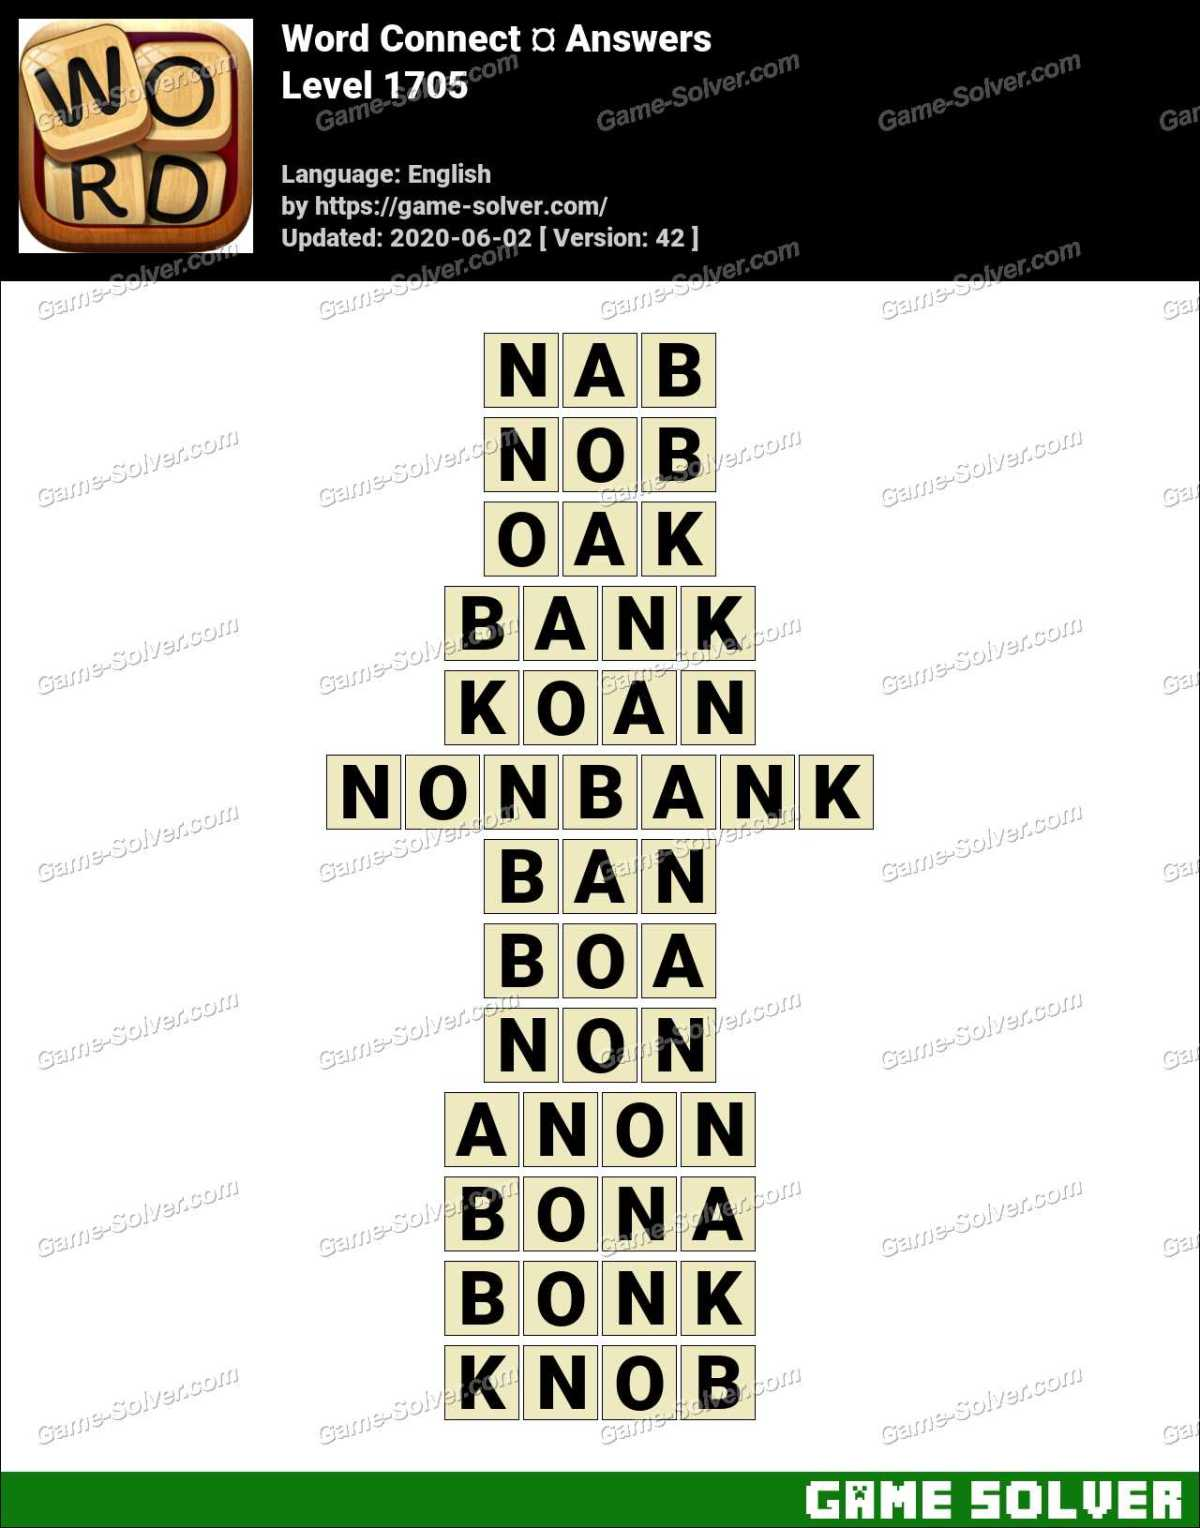 Word Connect Level 1705 Answers